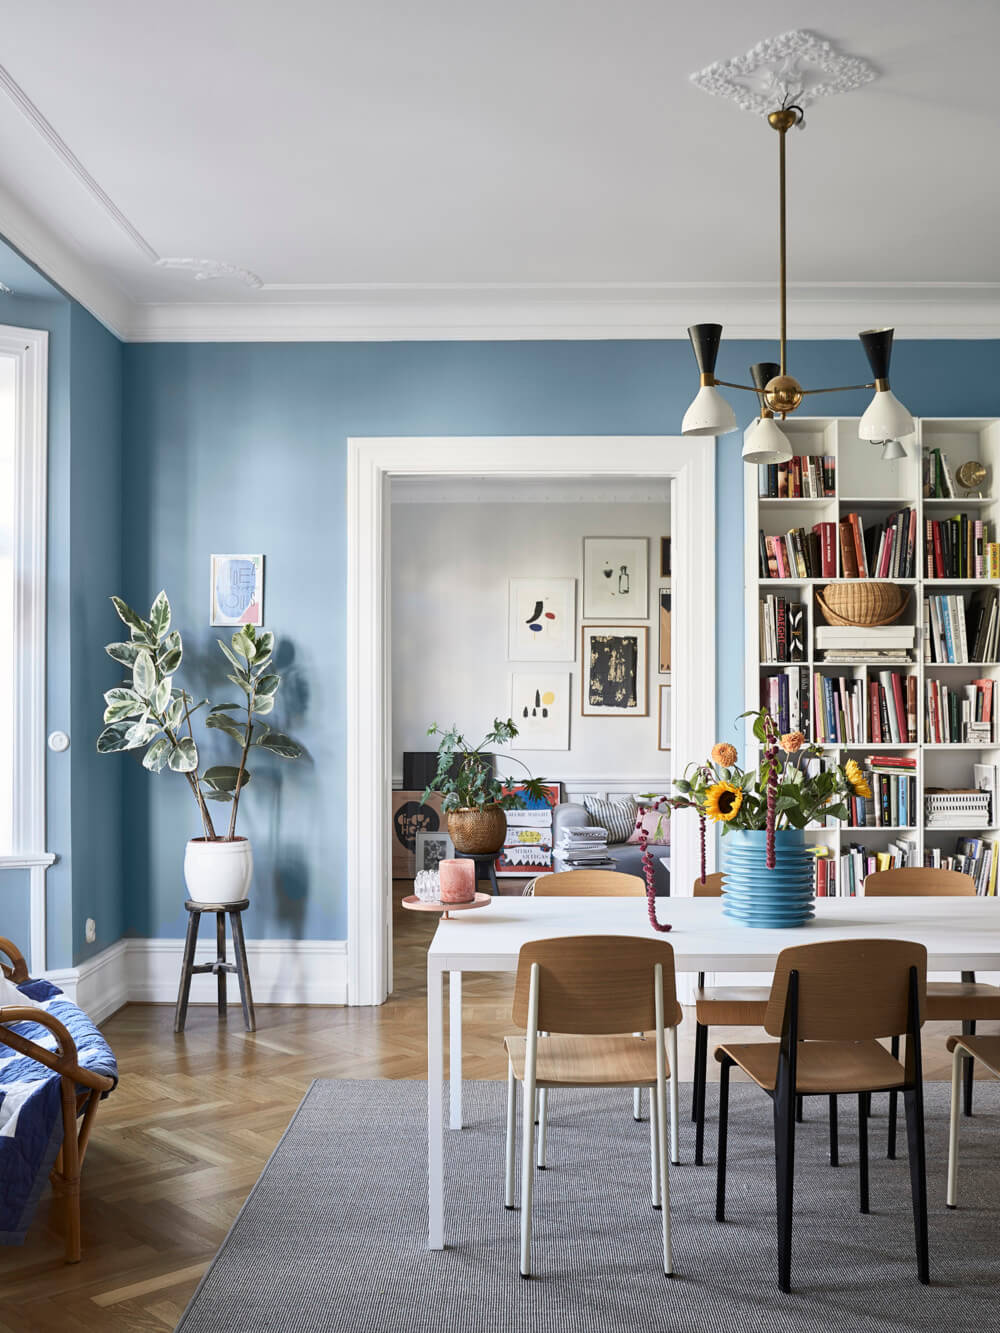 A+Scandinavian+Apartment+Decorated+in+Blue+and+Grey+Tones